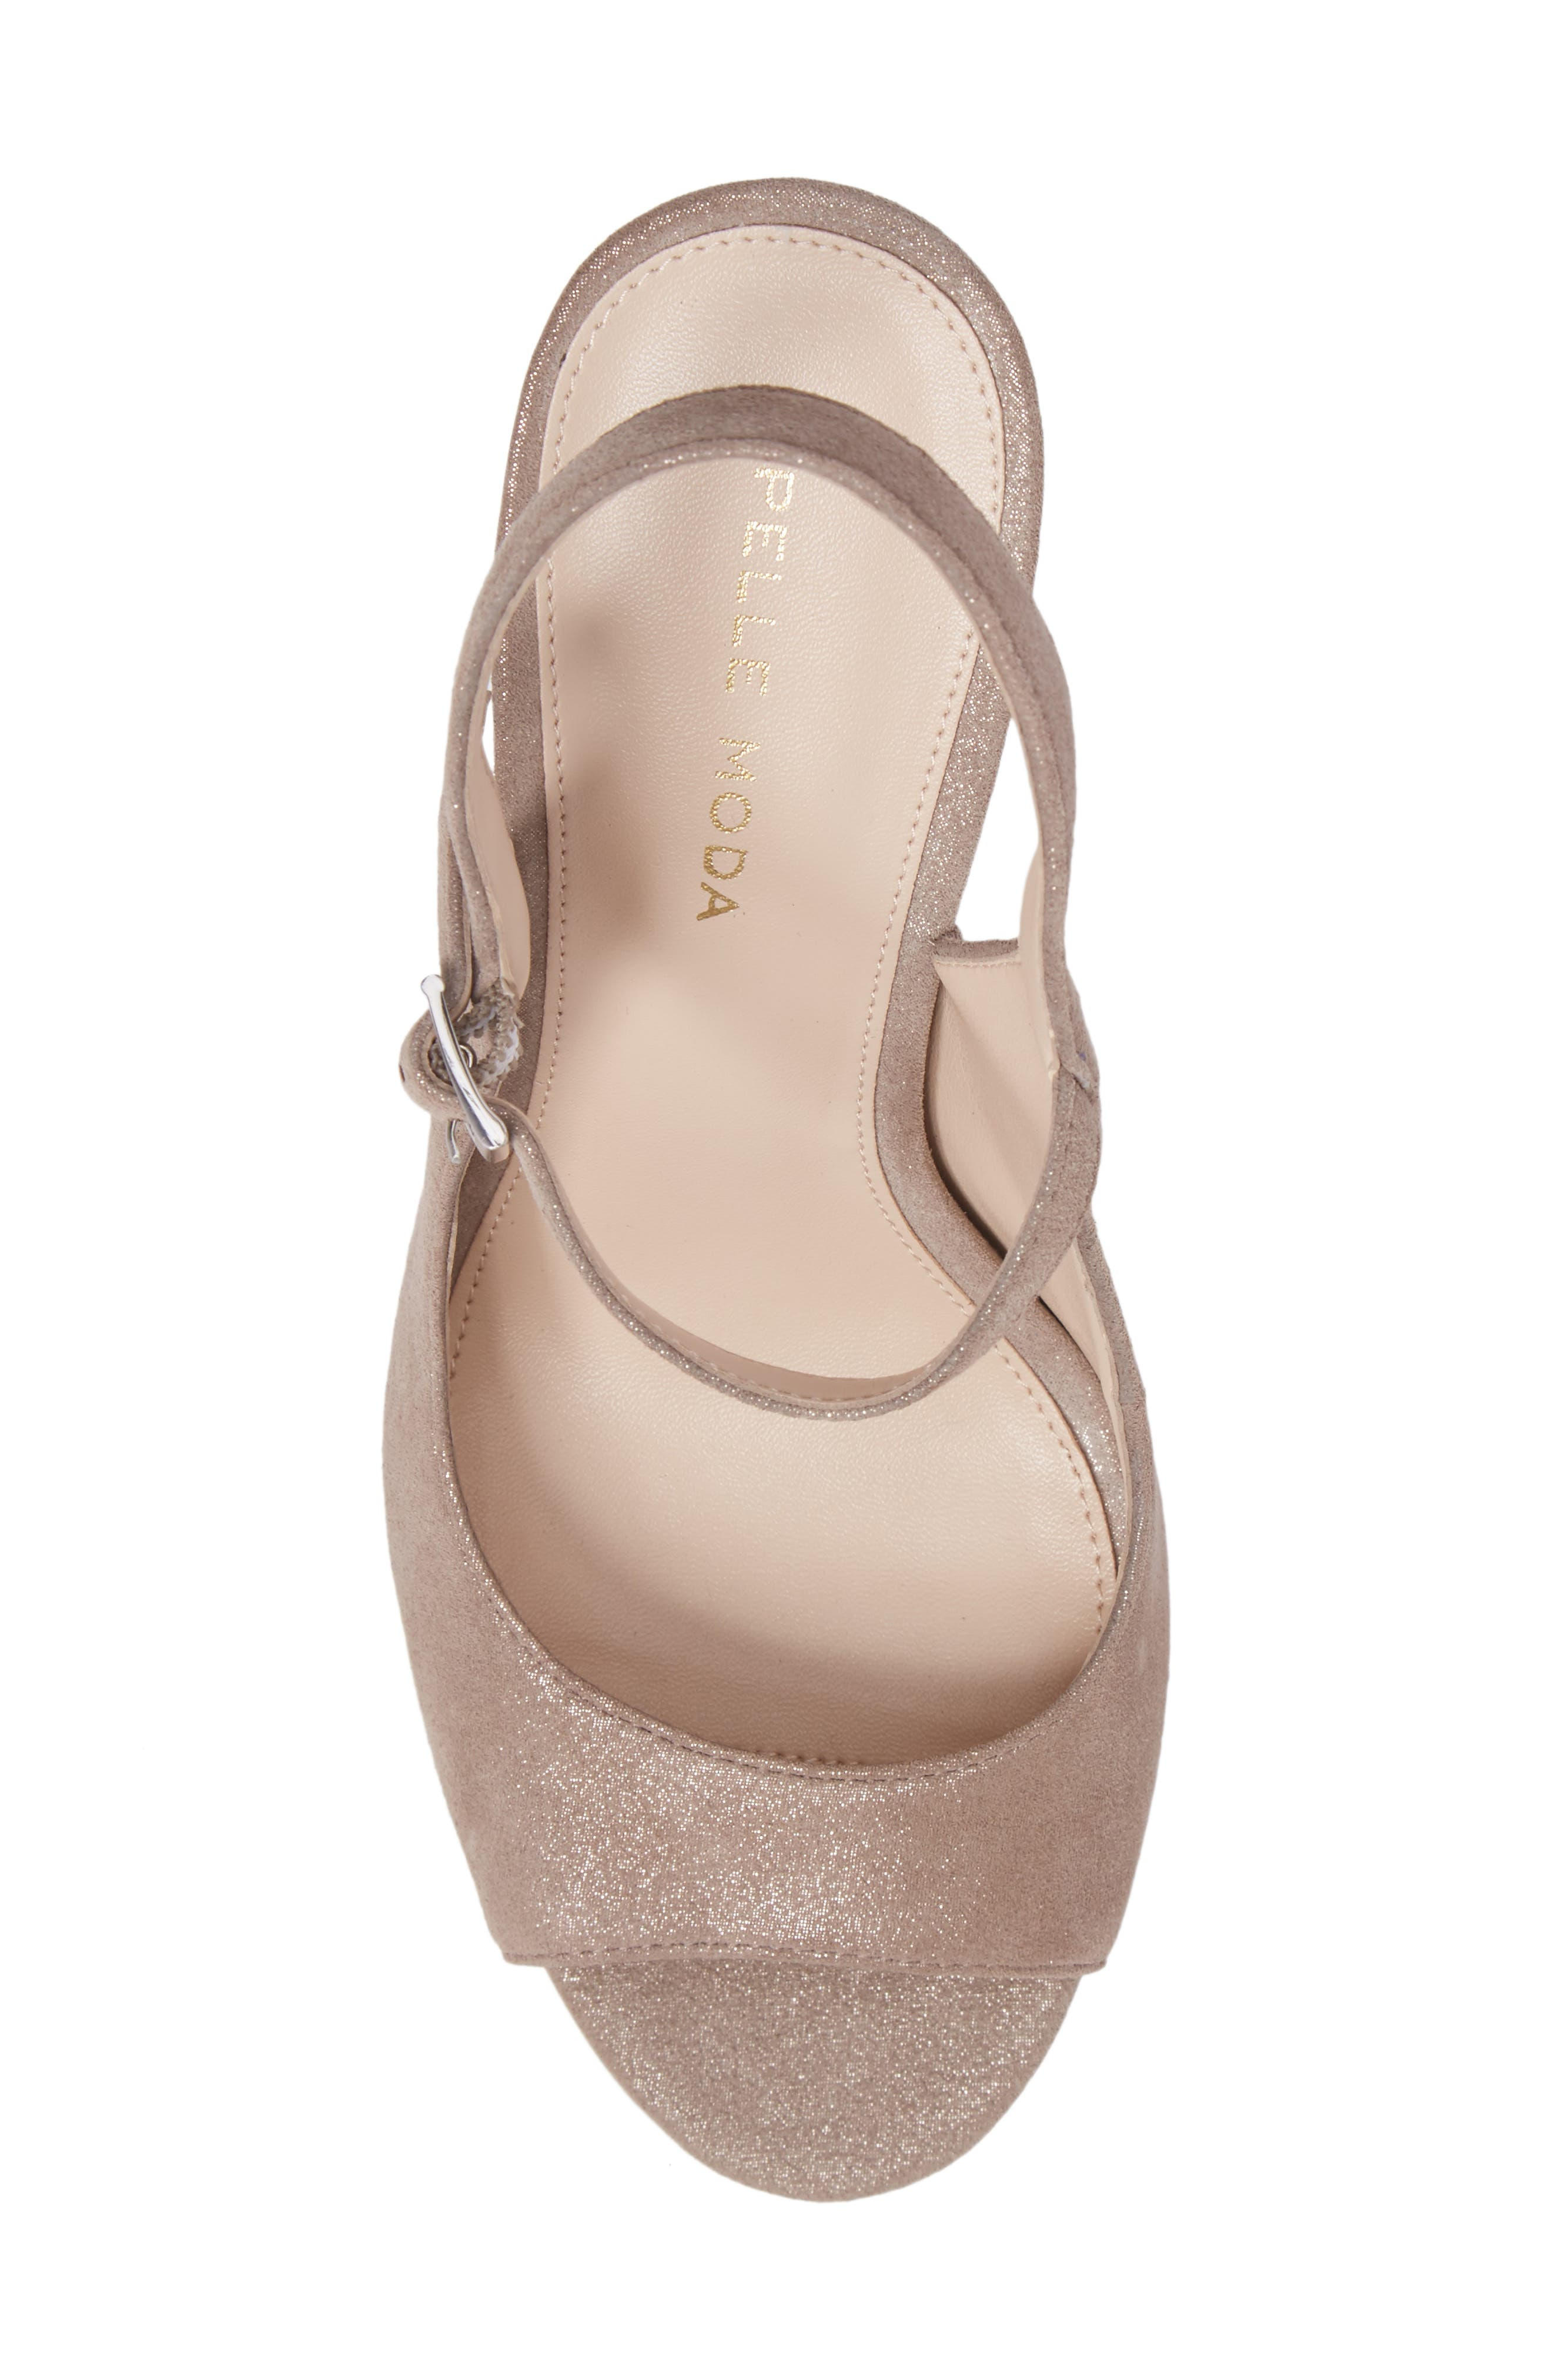 Kinsey Sandal,                             Alternate thumbnail 5, color,                             Taupe Leather